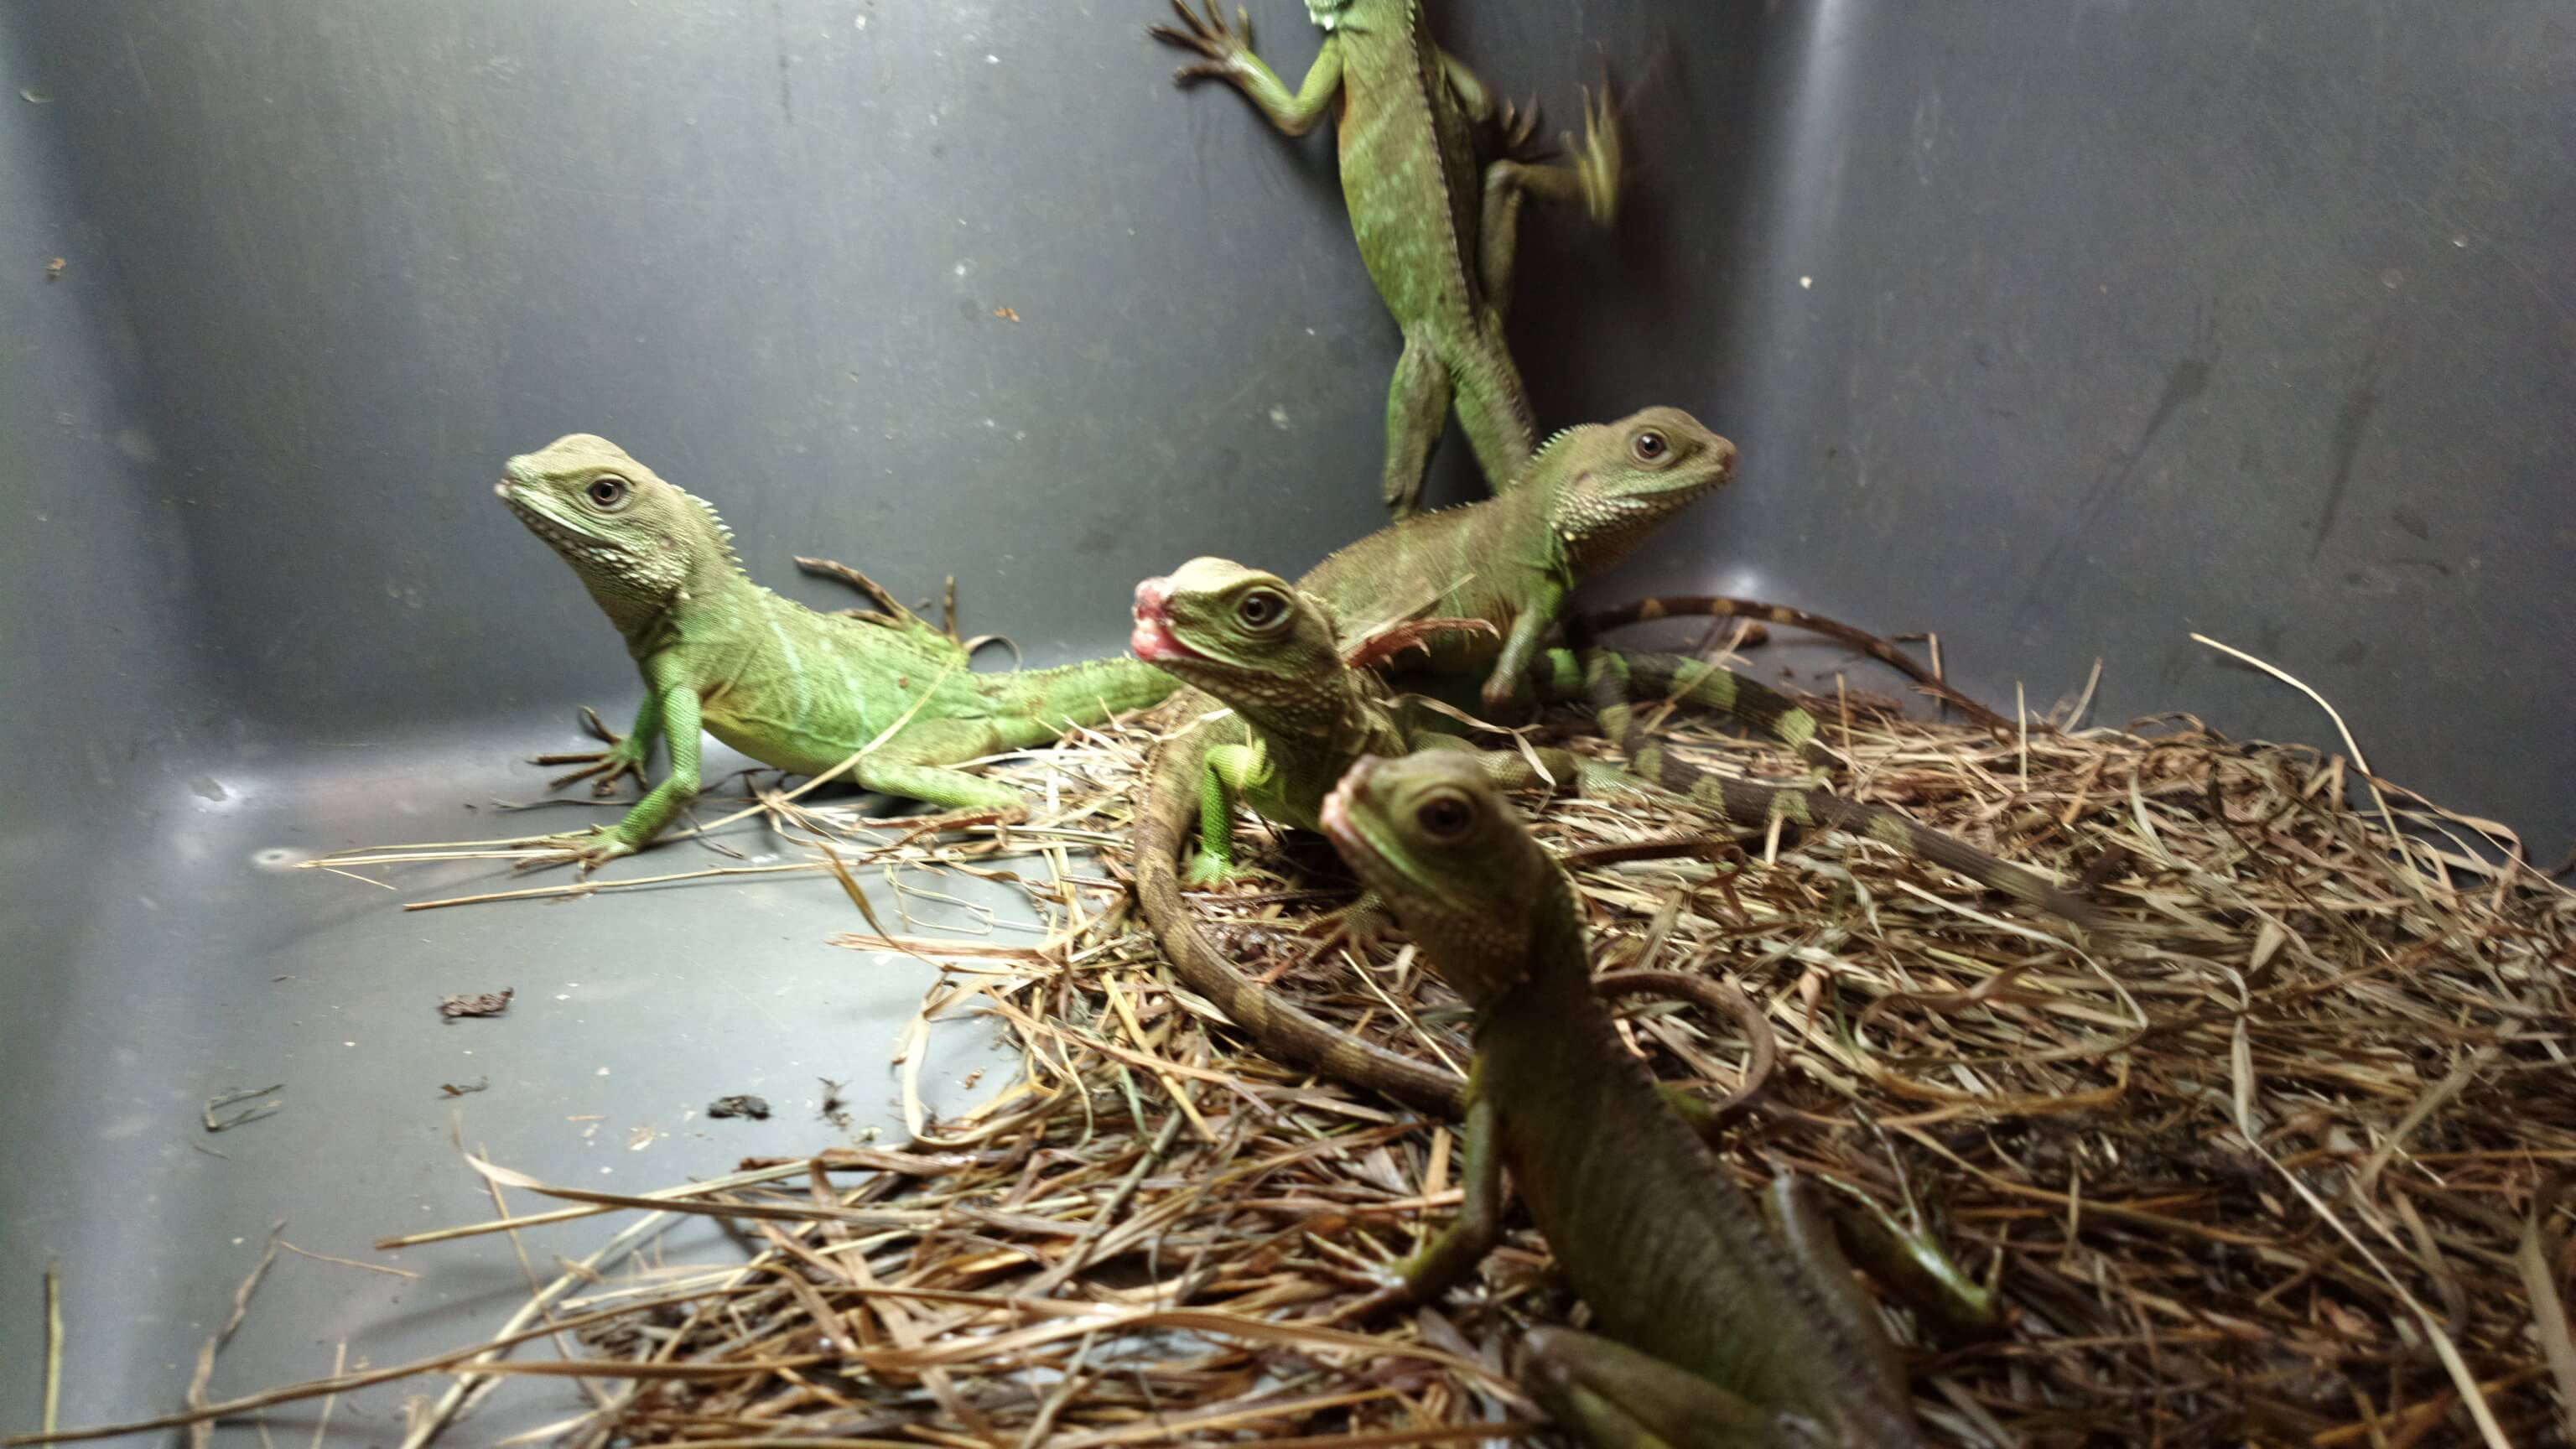 Reptiles suffer left to die at another massive petsmart for Water lizard fish